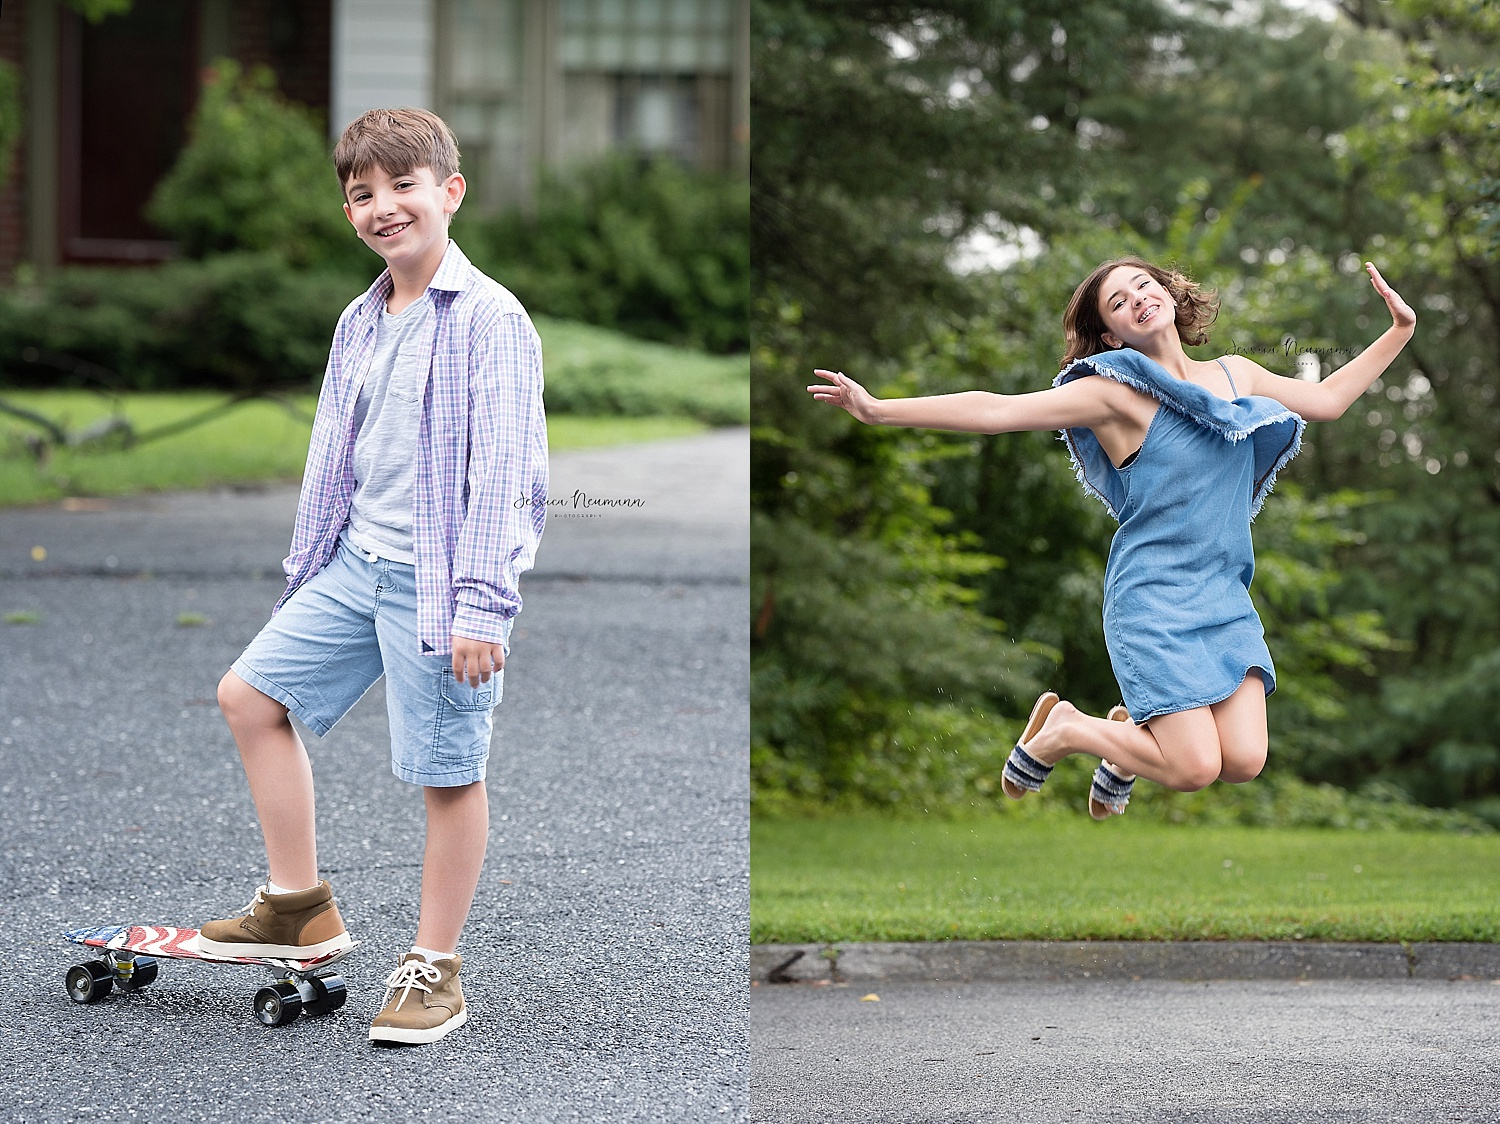 extendedfamilysession_Elliottcityphotographer_Newmarketextendedfamily_Outdoorphotography_Kids_Personalityphotography